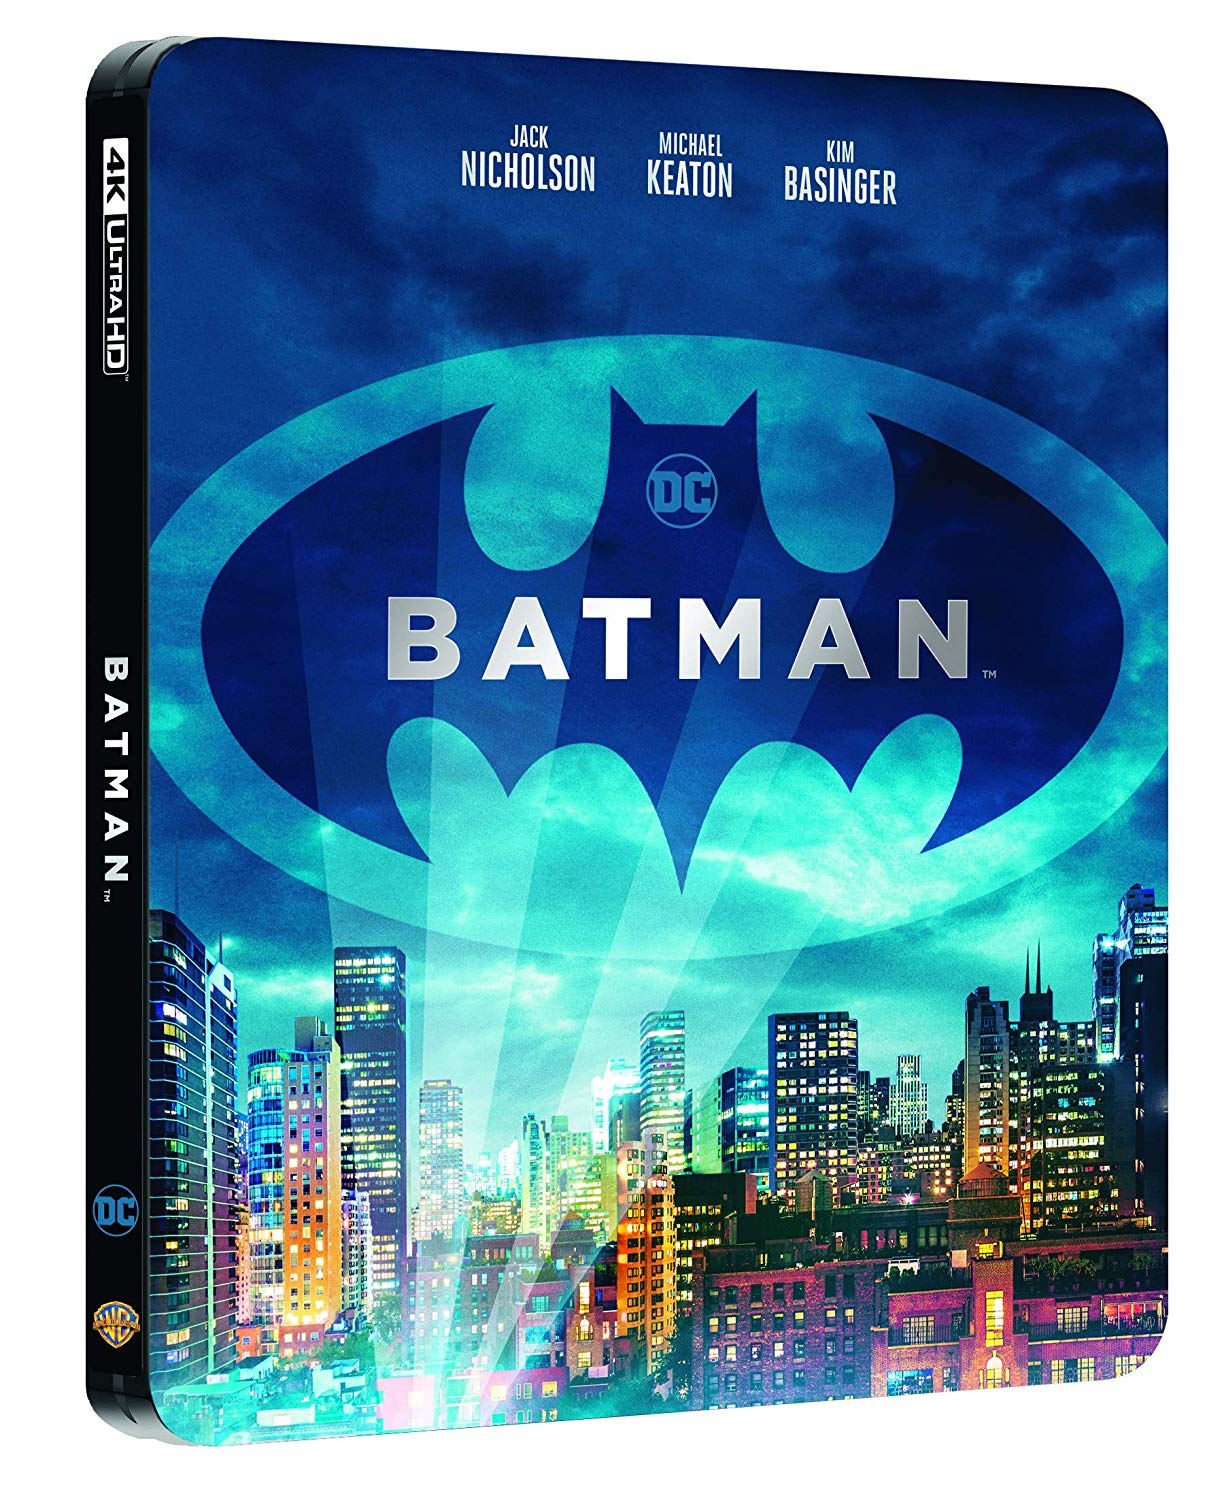 Batman (1989) (DC Comics) (4K) (edizione limitata steelbook)